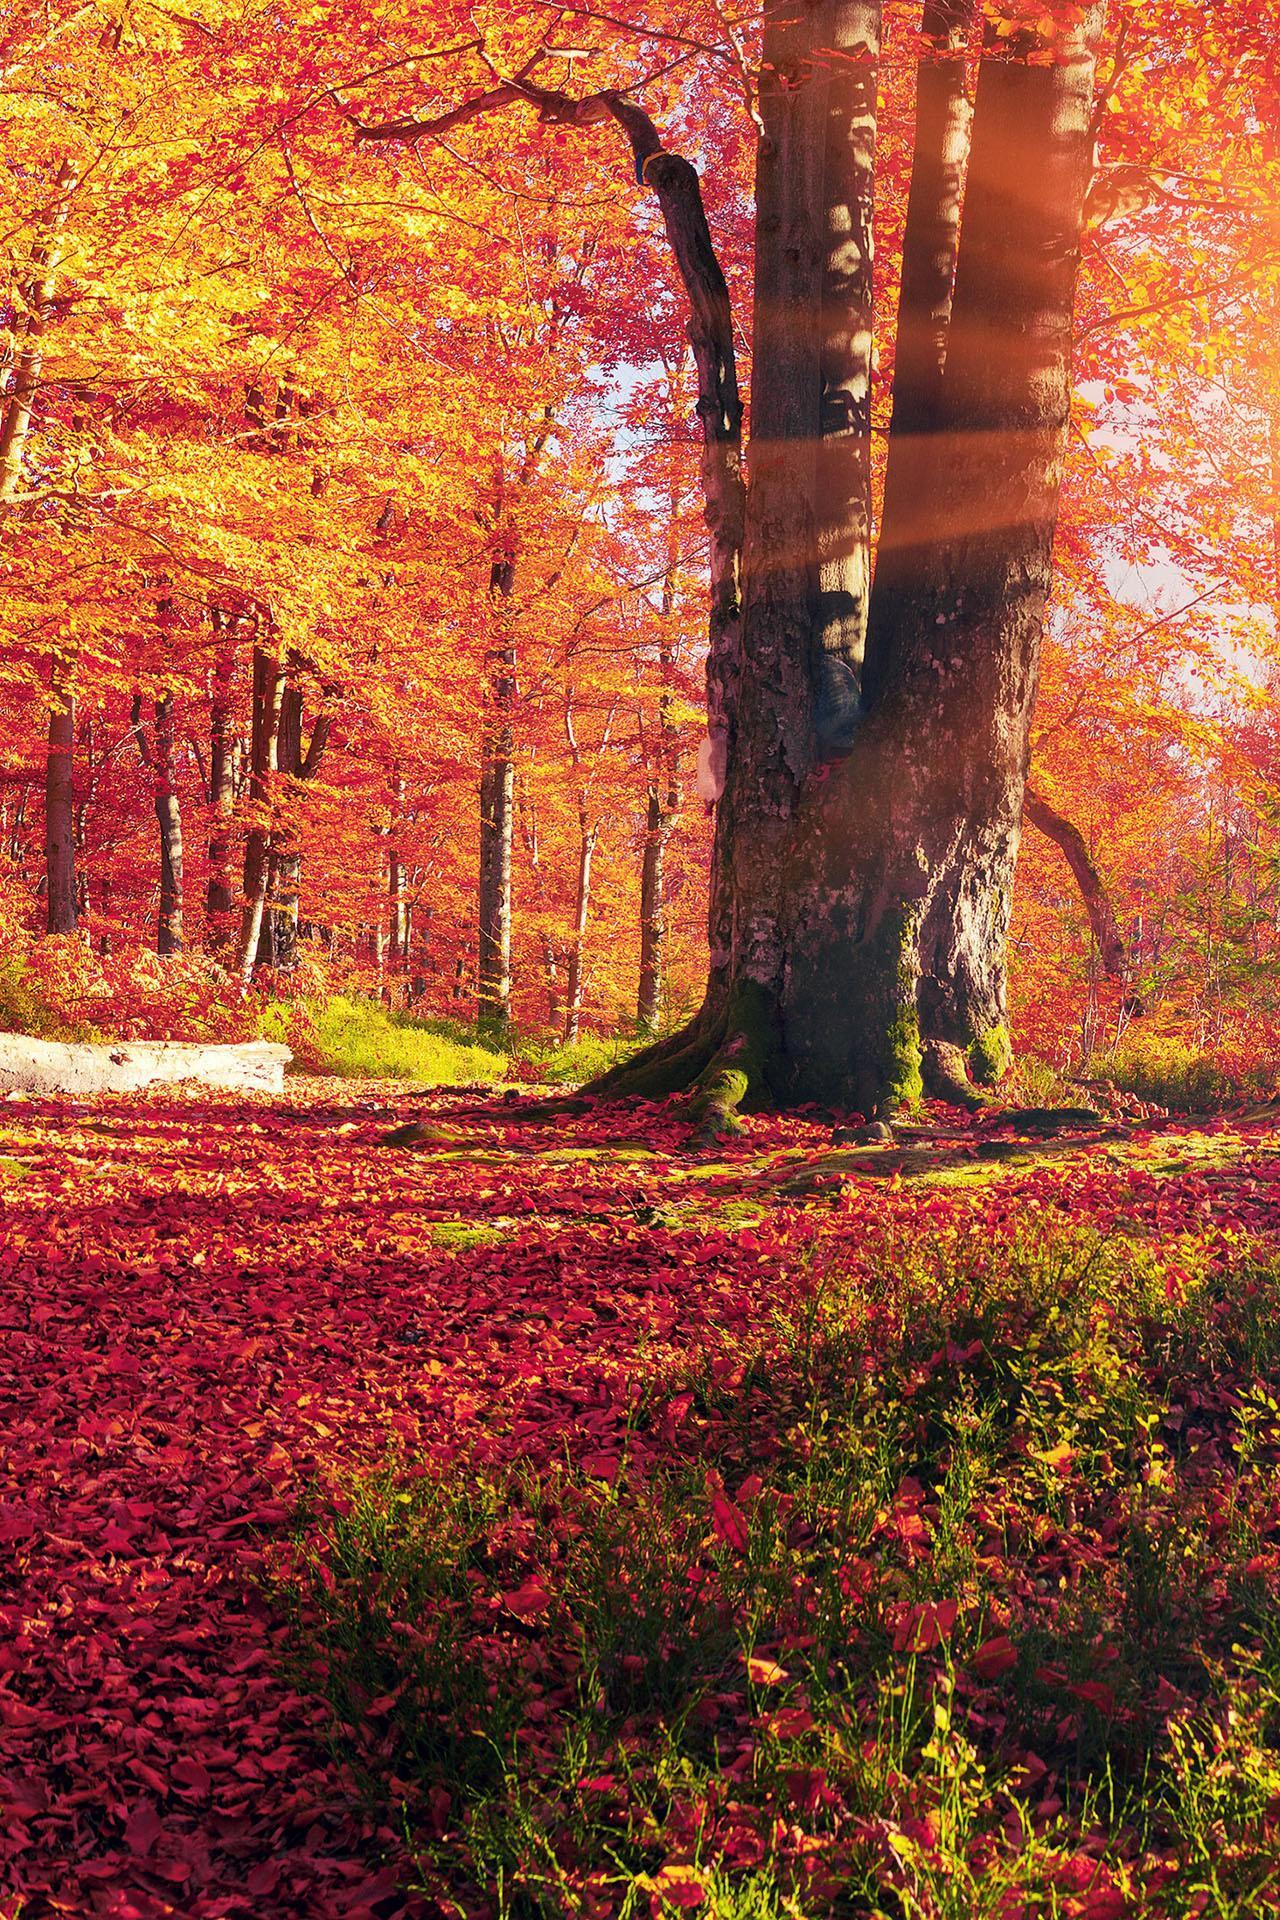 Autumn Wallpaper Hd Backgrounds Themes For Android Apk Download